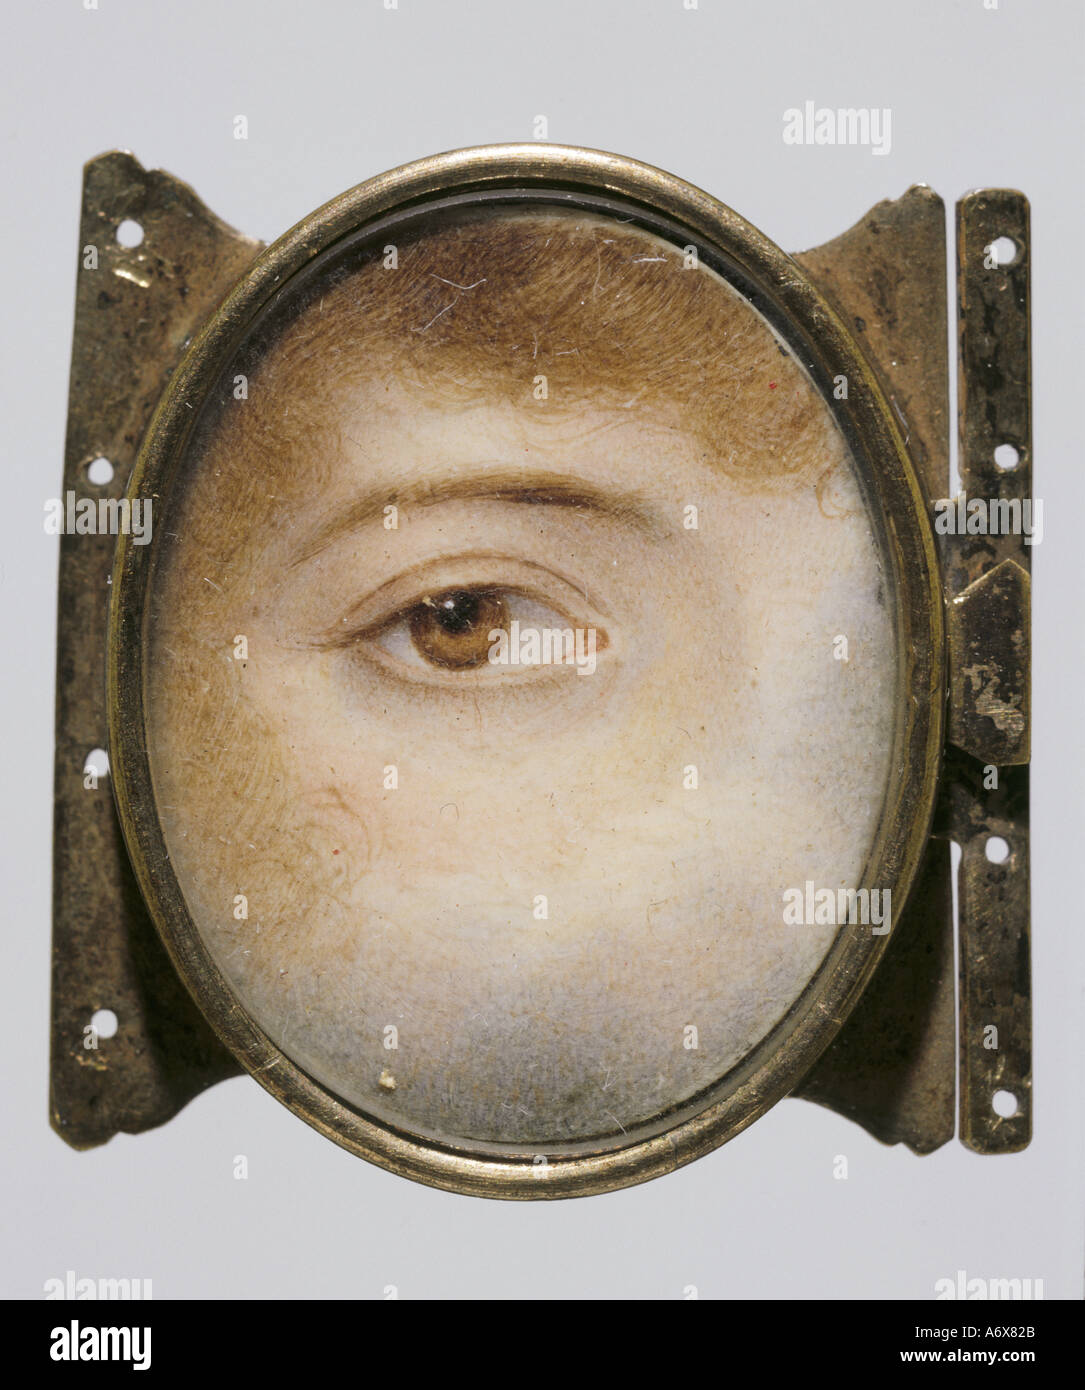 Eye by Charles John Smart. England, late 19th century. - Stock Image